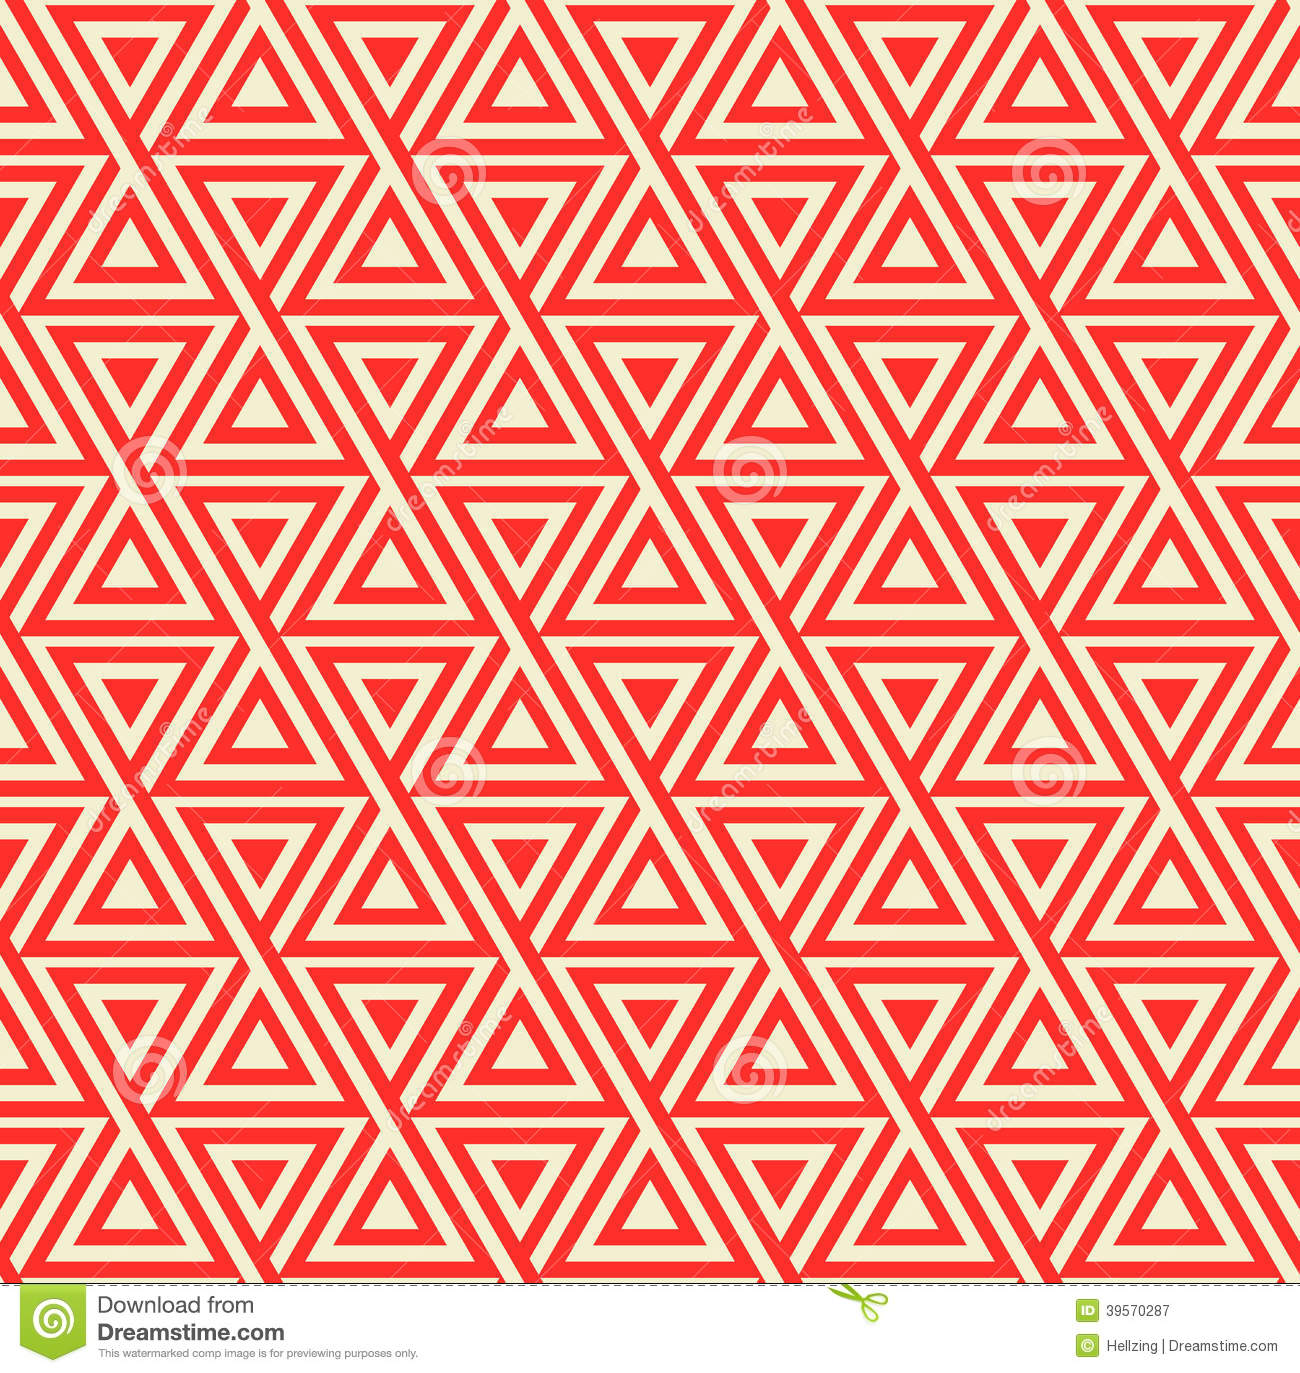 Home Decor Peacock Abstract Seamless Geometric Pattern With Triangles Stock